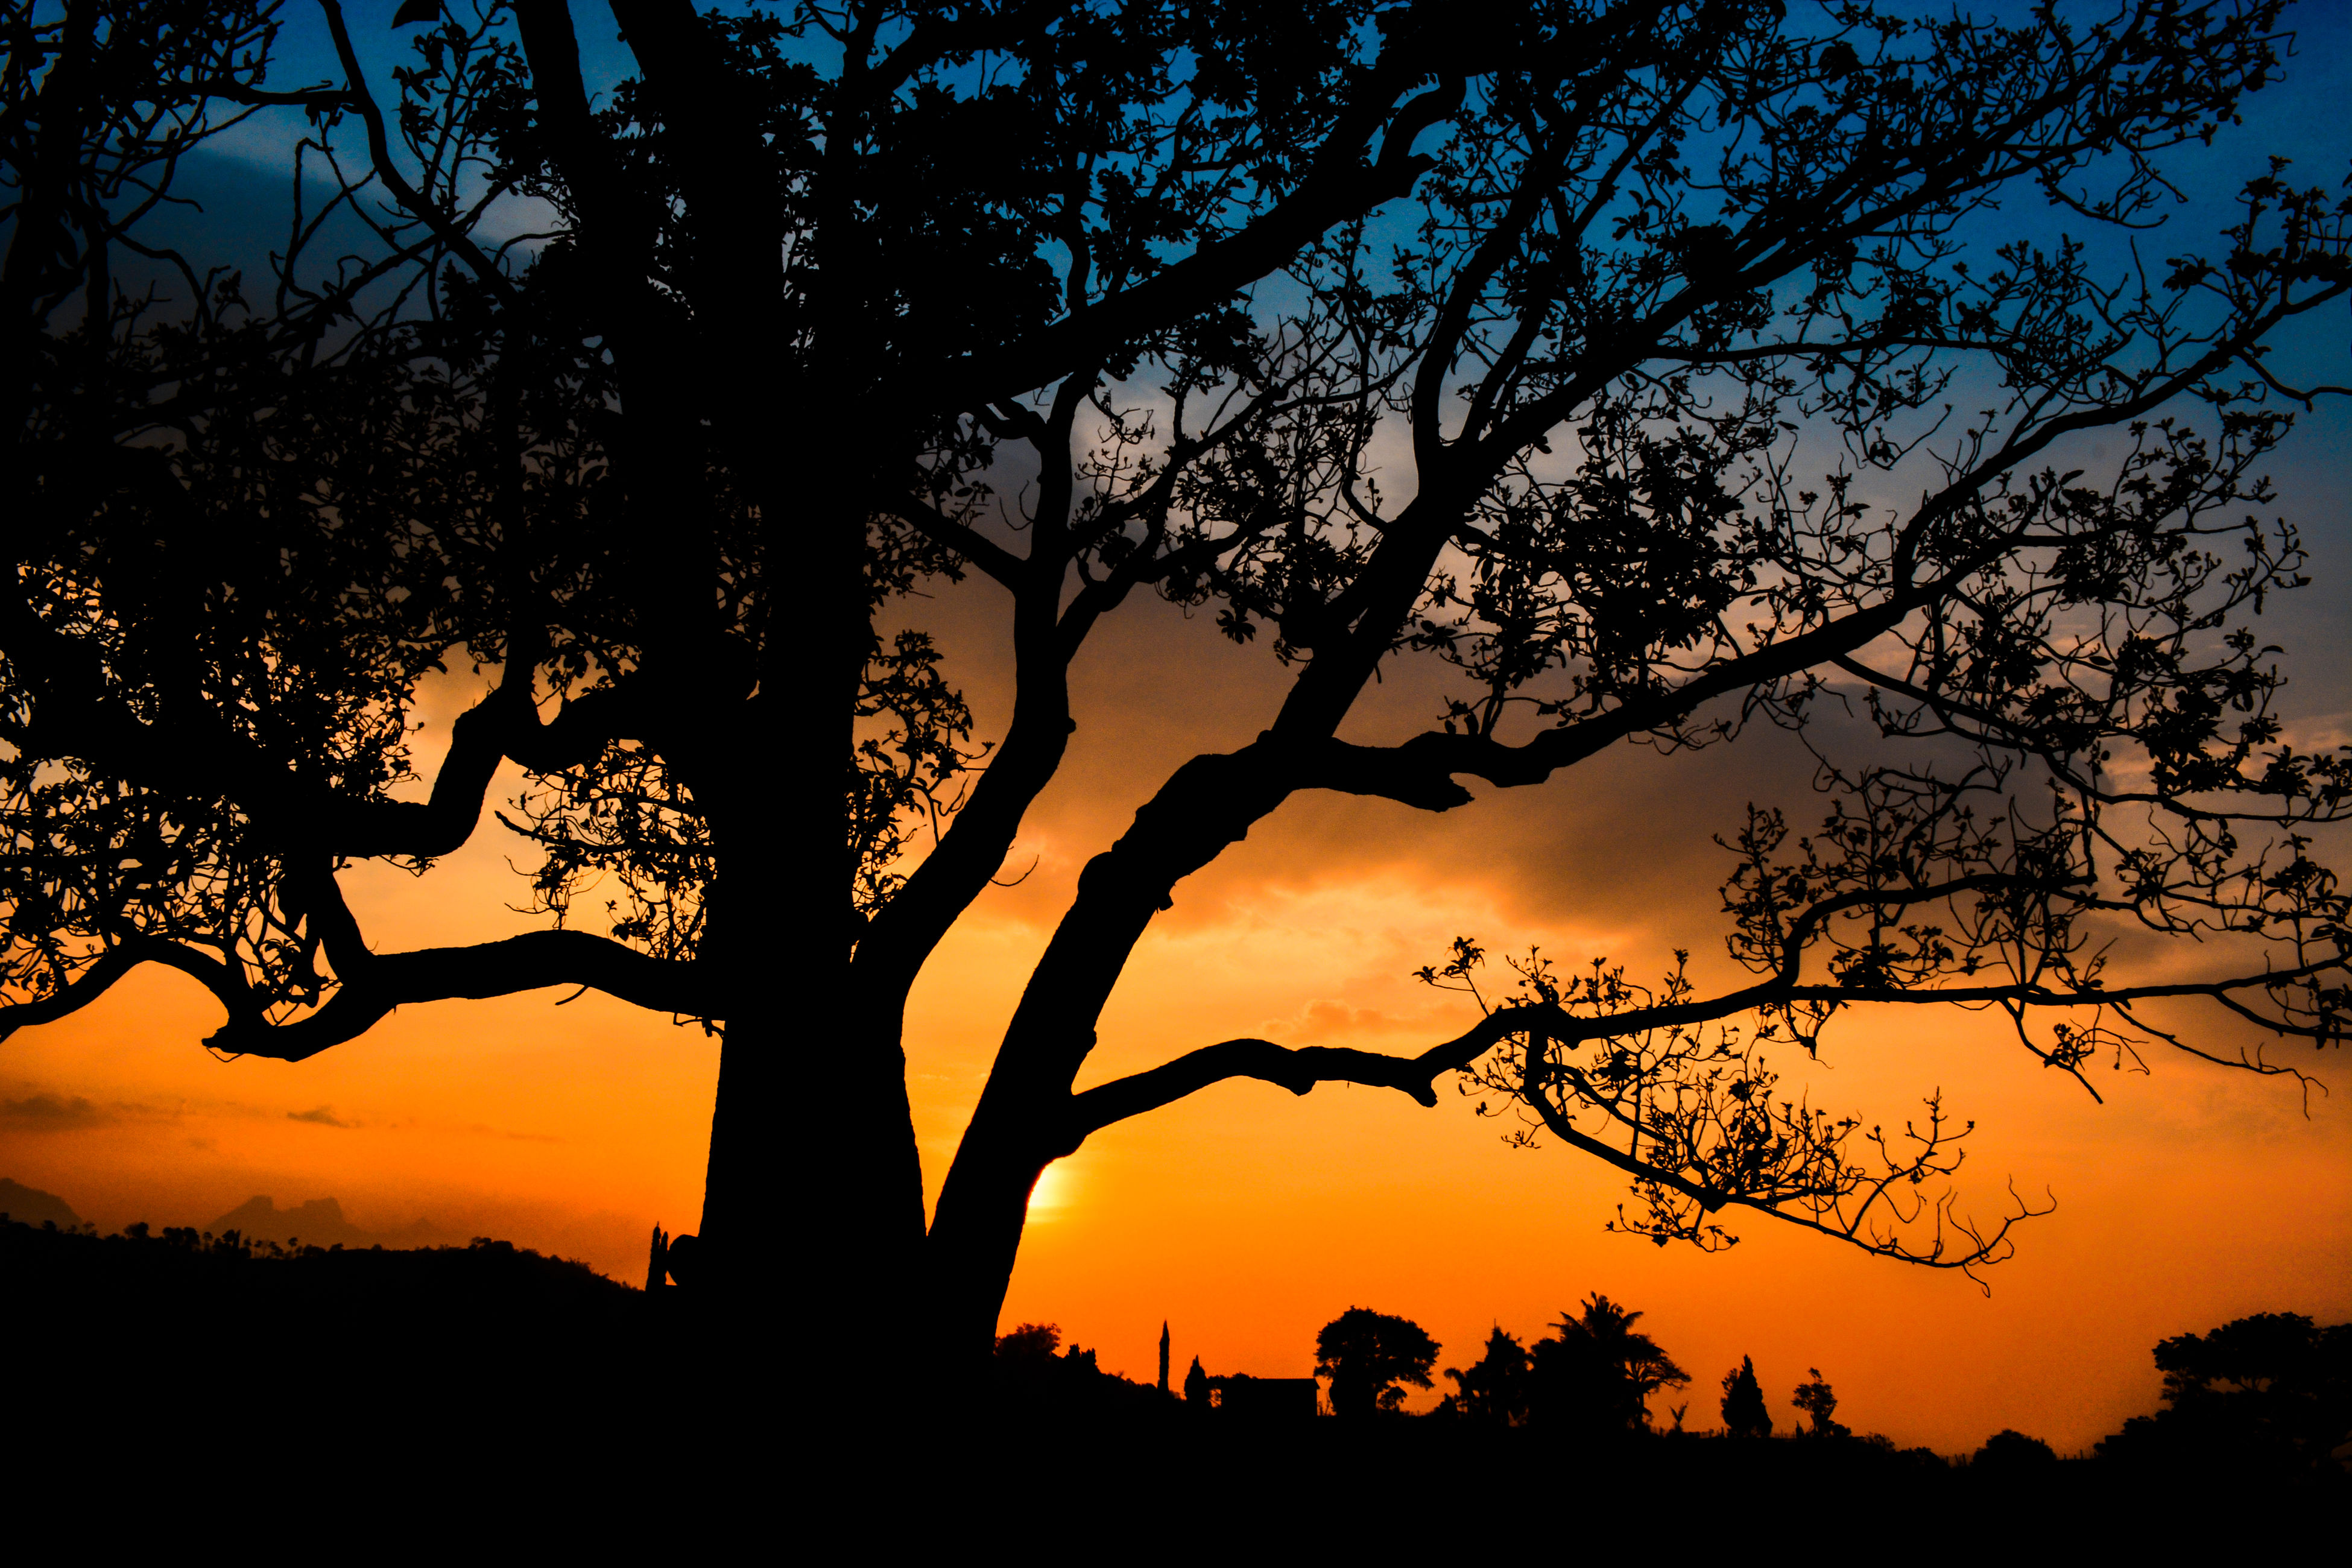 silhouette, sunset, tree, tranquility, tranquil scene, beauty in nature, scenics, branch, sky, nature, orange color, bare tree, idyllic, low angle view, tree trunk, growth, outline, outdoors, majestic, no people